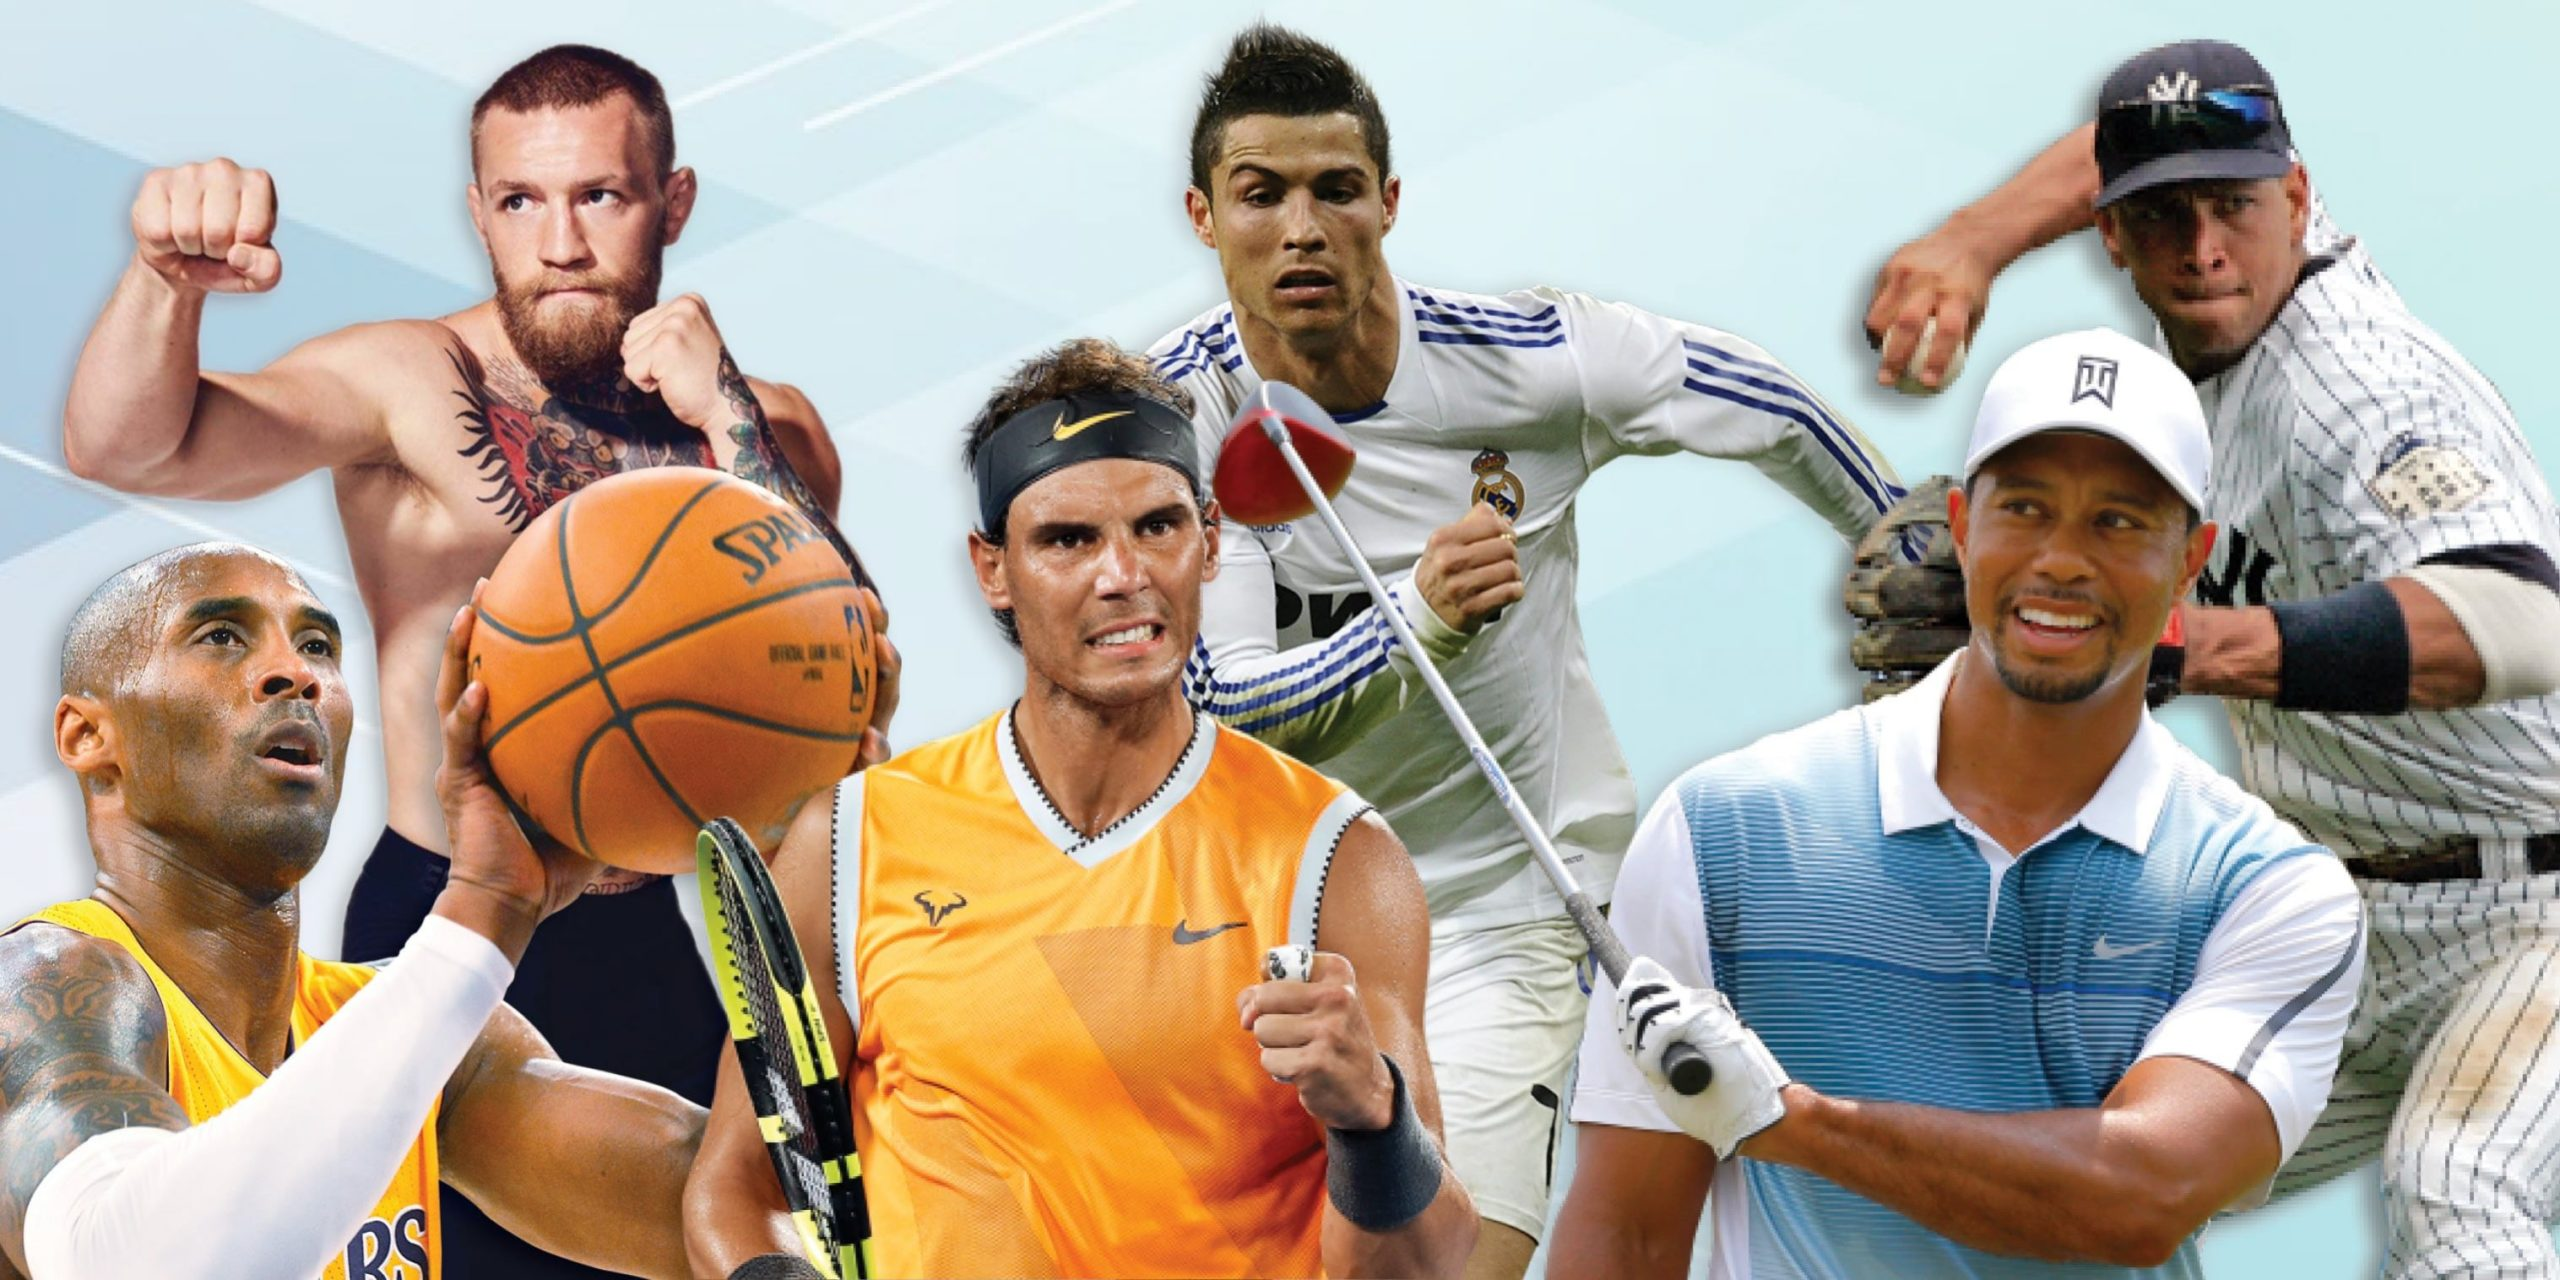 Professional Athletes stem cells therapy